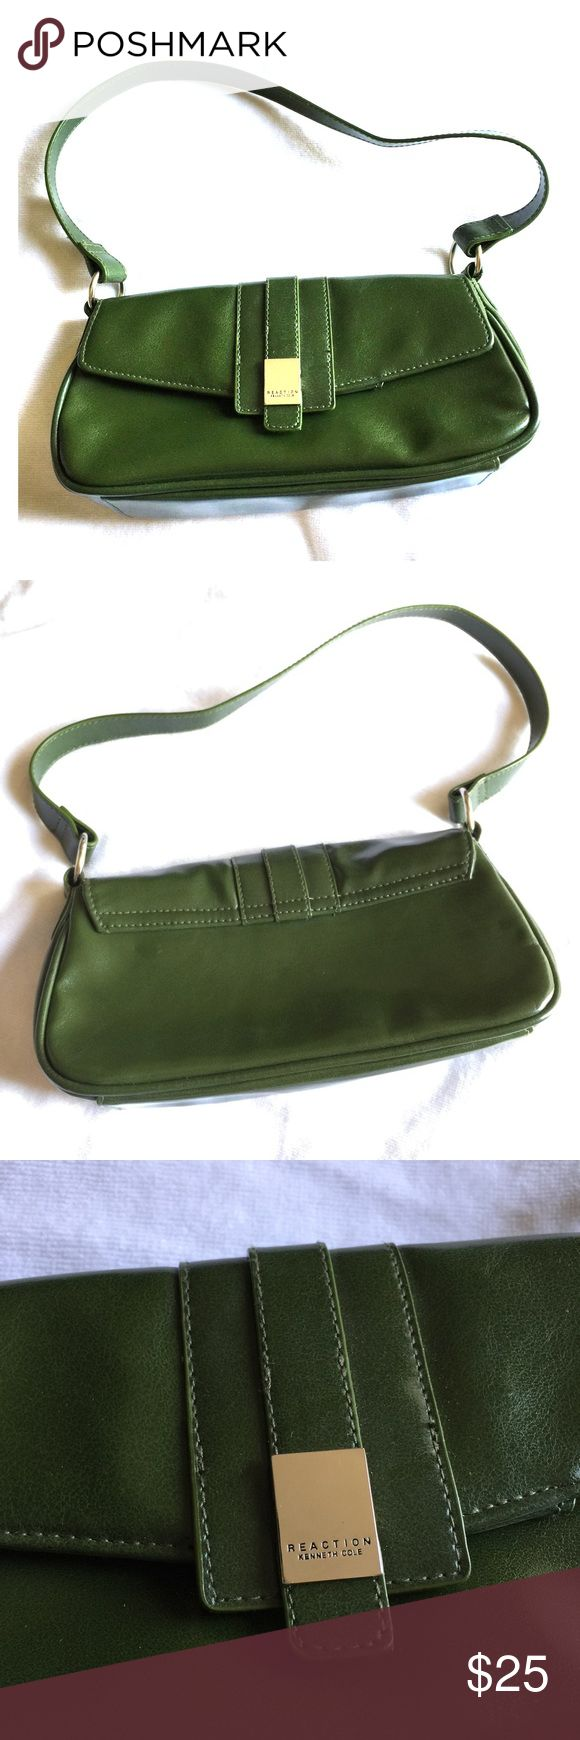 Reaction Kenneth Cole Green Shoulder Bag Reaction Kenneth Cole Green Shoulder Bag. Interior zipper and two pockets. Great condition besides 1 spot on the inside. Kenneth Cole Reaction Bags Shoulder Bags